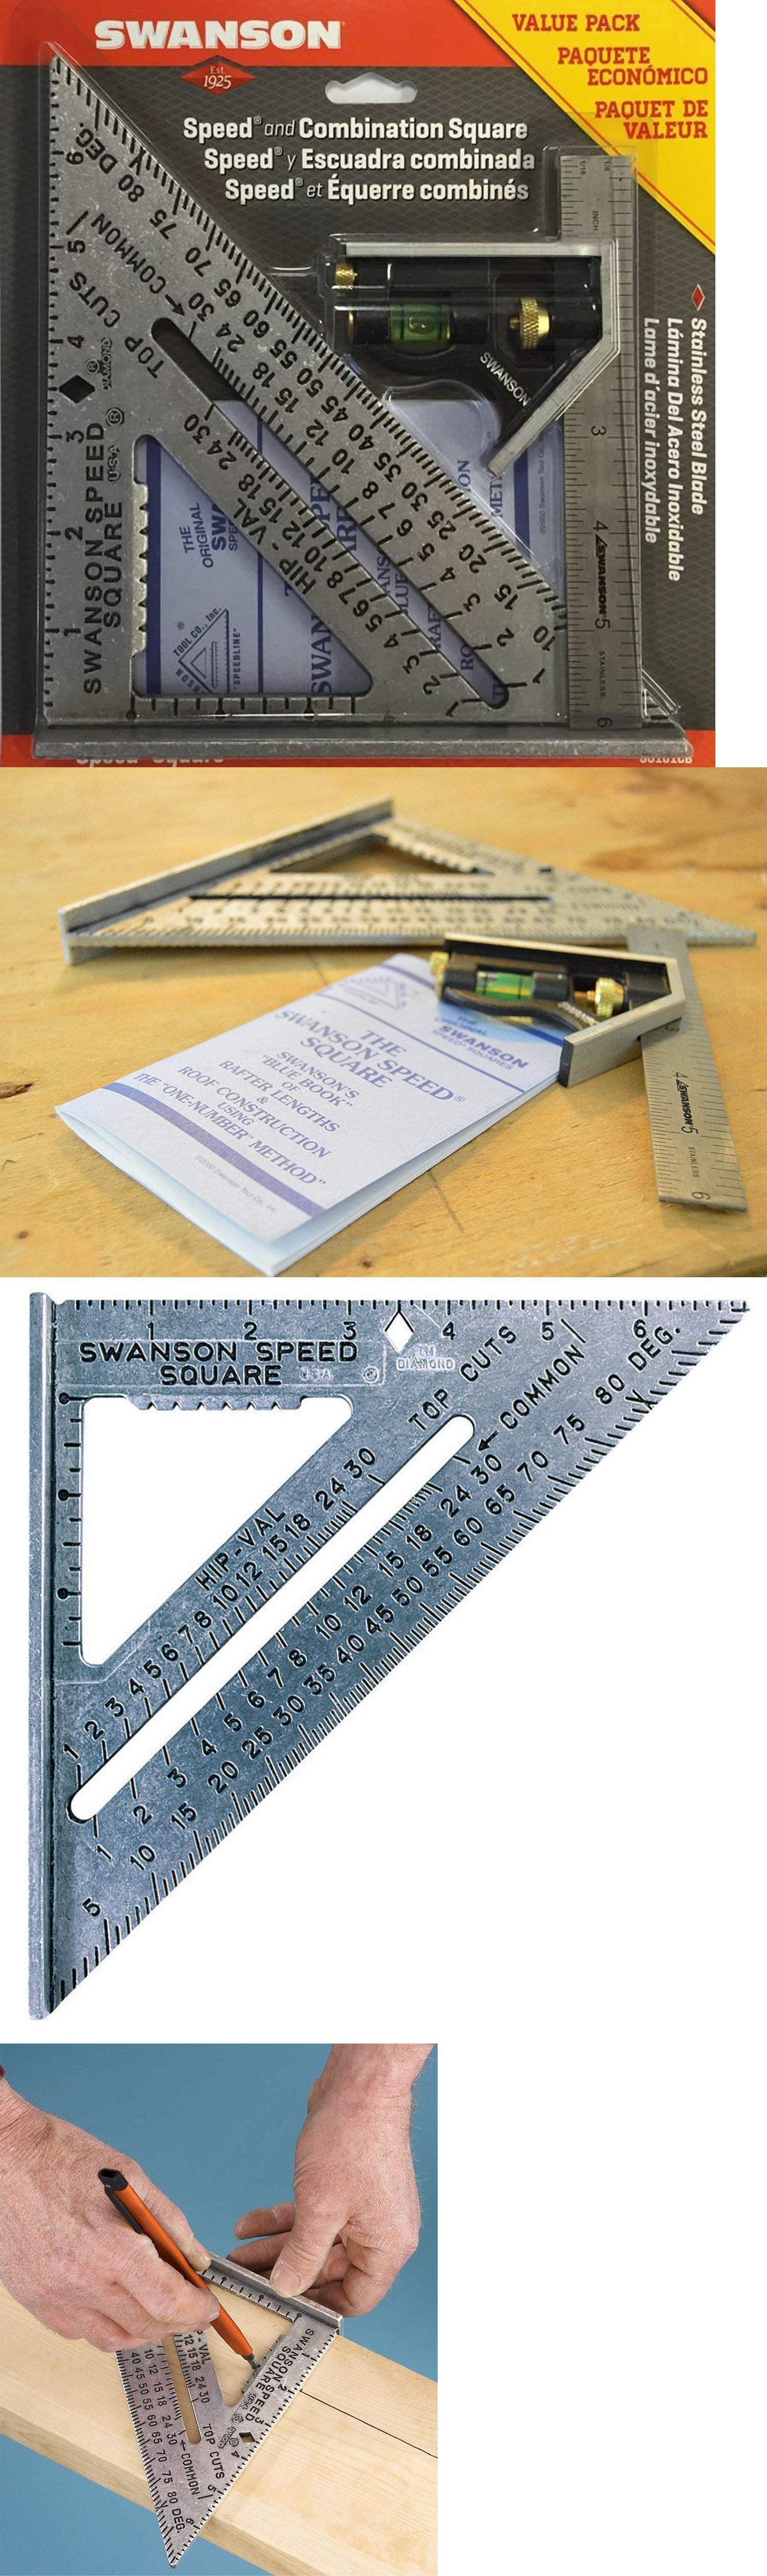 Details About Speed Square Layout Tool With Blue Book And Combination Square Swanson S0101cb Speed Square Blue Books Swanson Speed Square